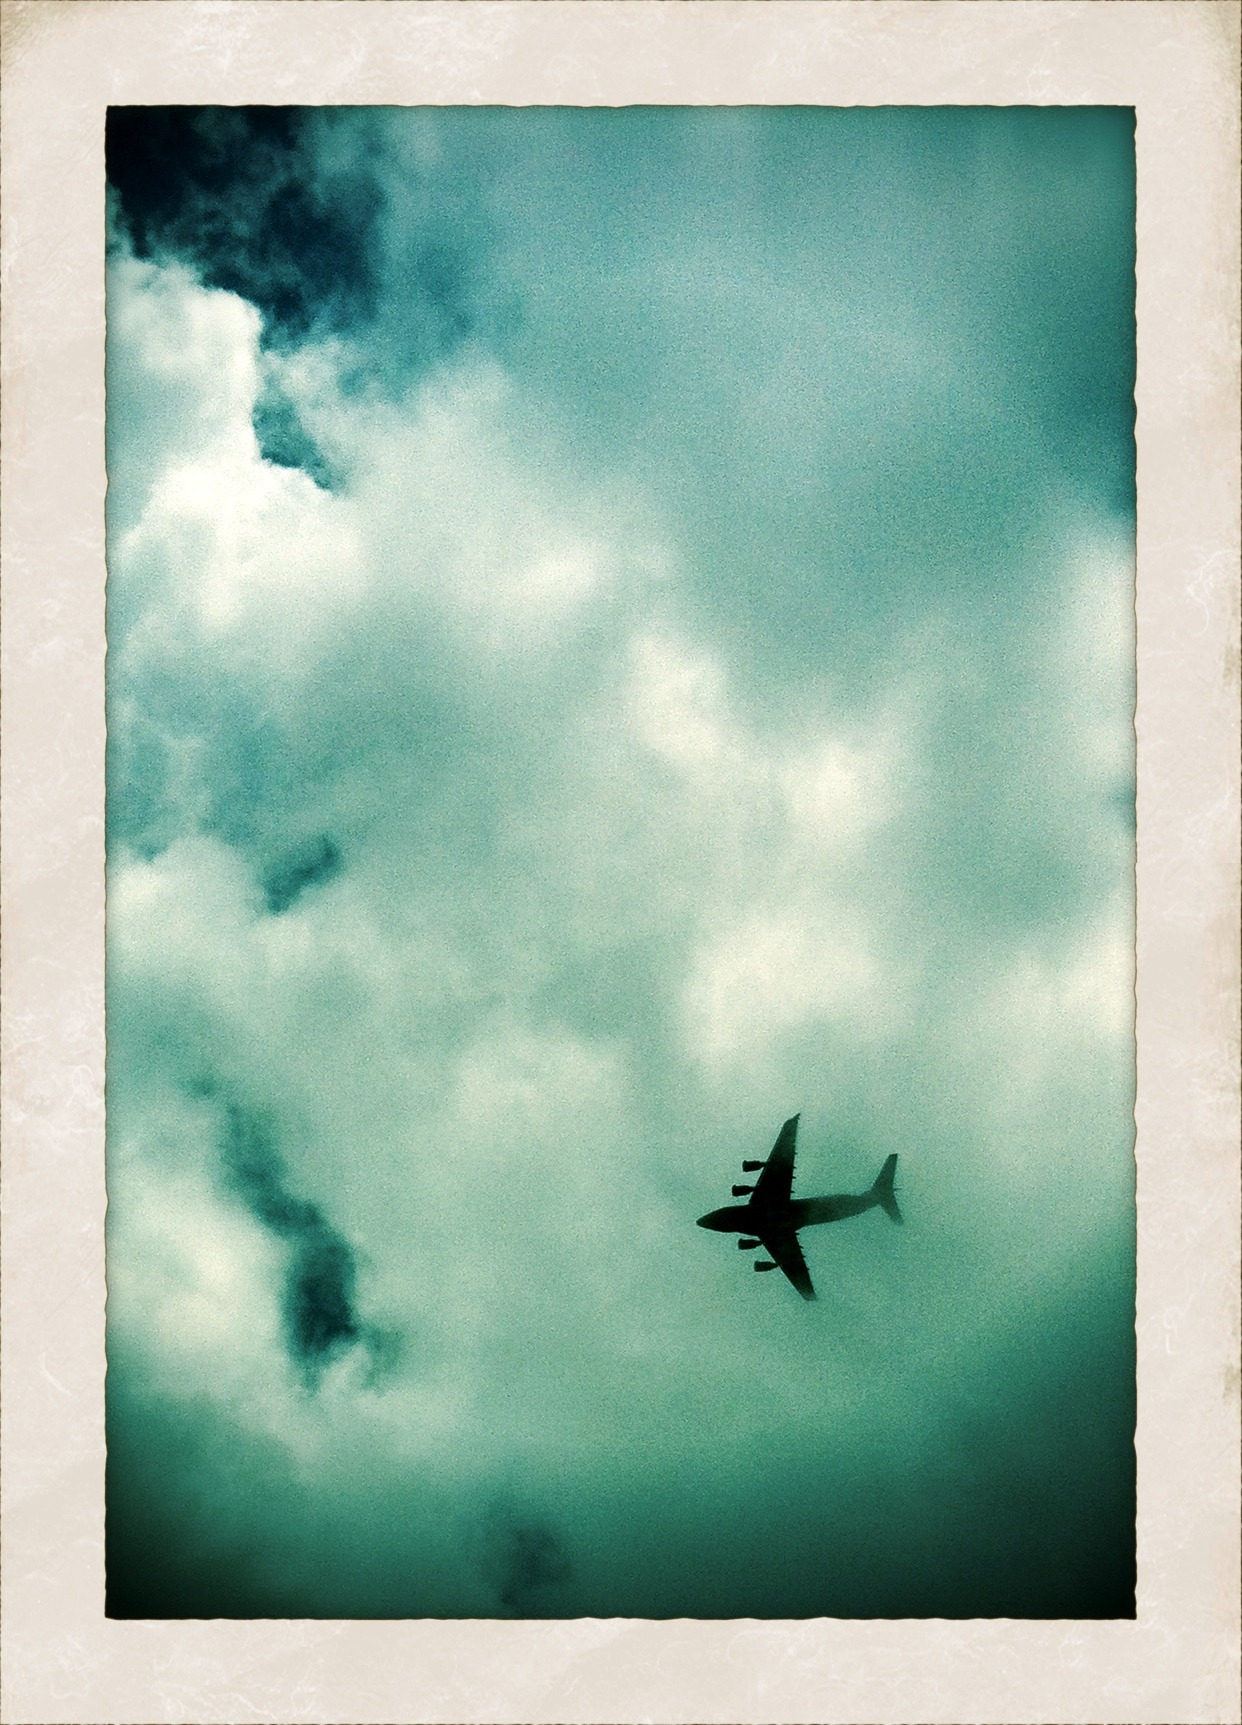 Can we pretend that airplanes in the night sky are like shooting stars? (photo by me: the citadel, south carolina)